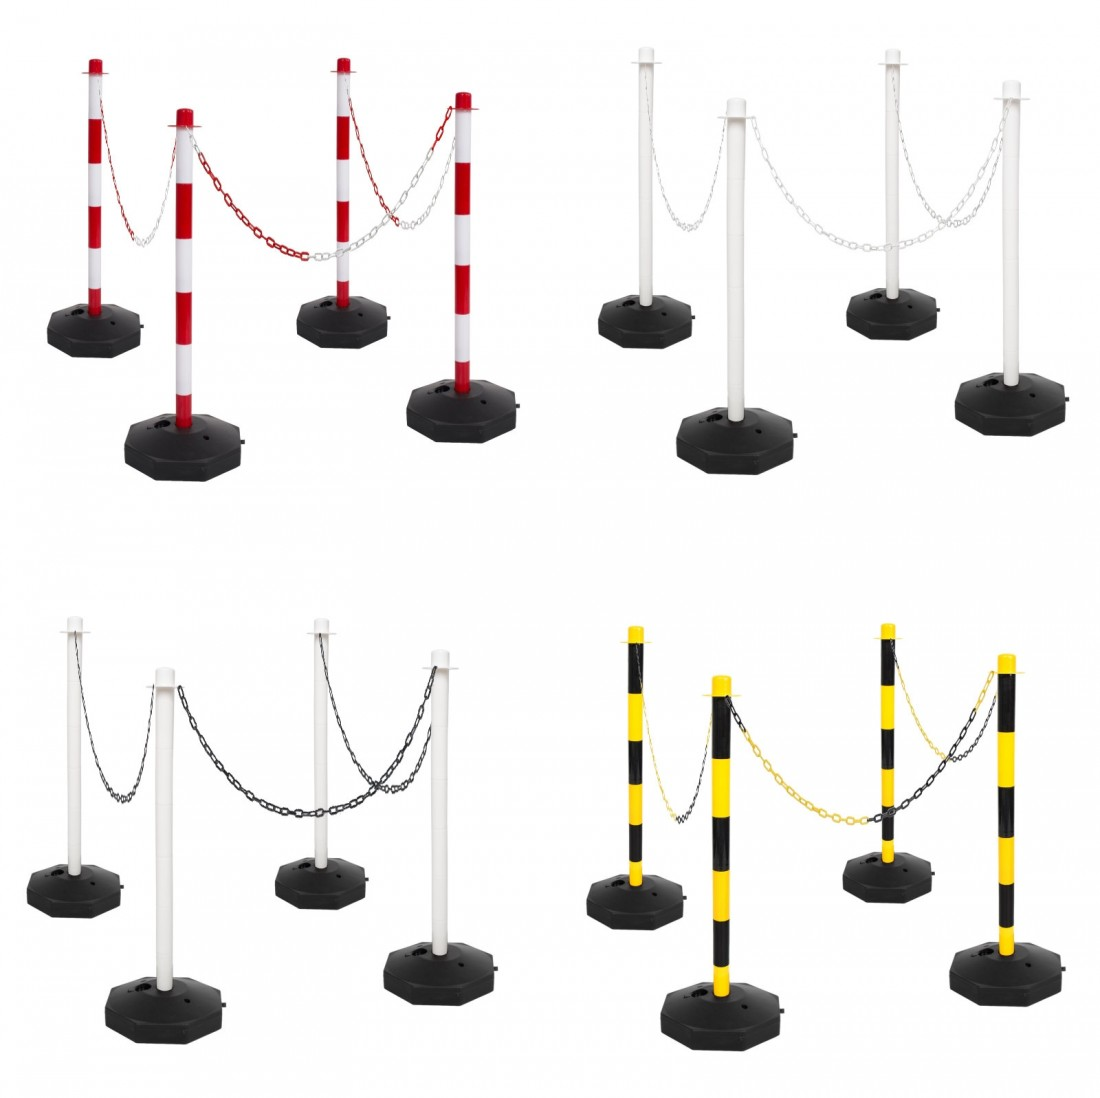 Plastic Support Posts for Plastic Barrier Chain 4 Post Kit